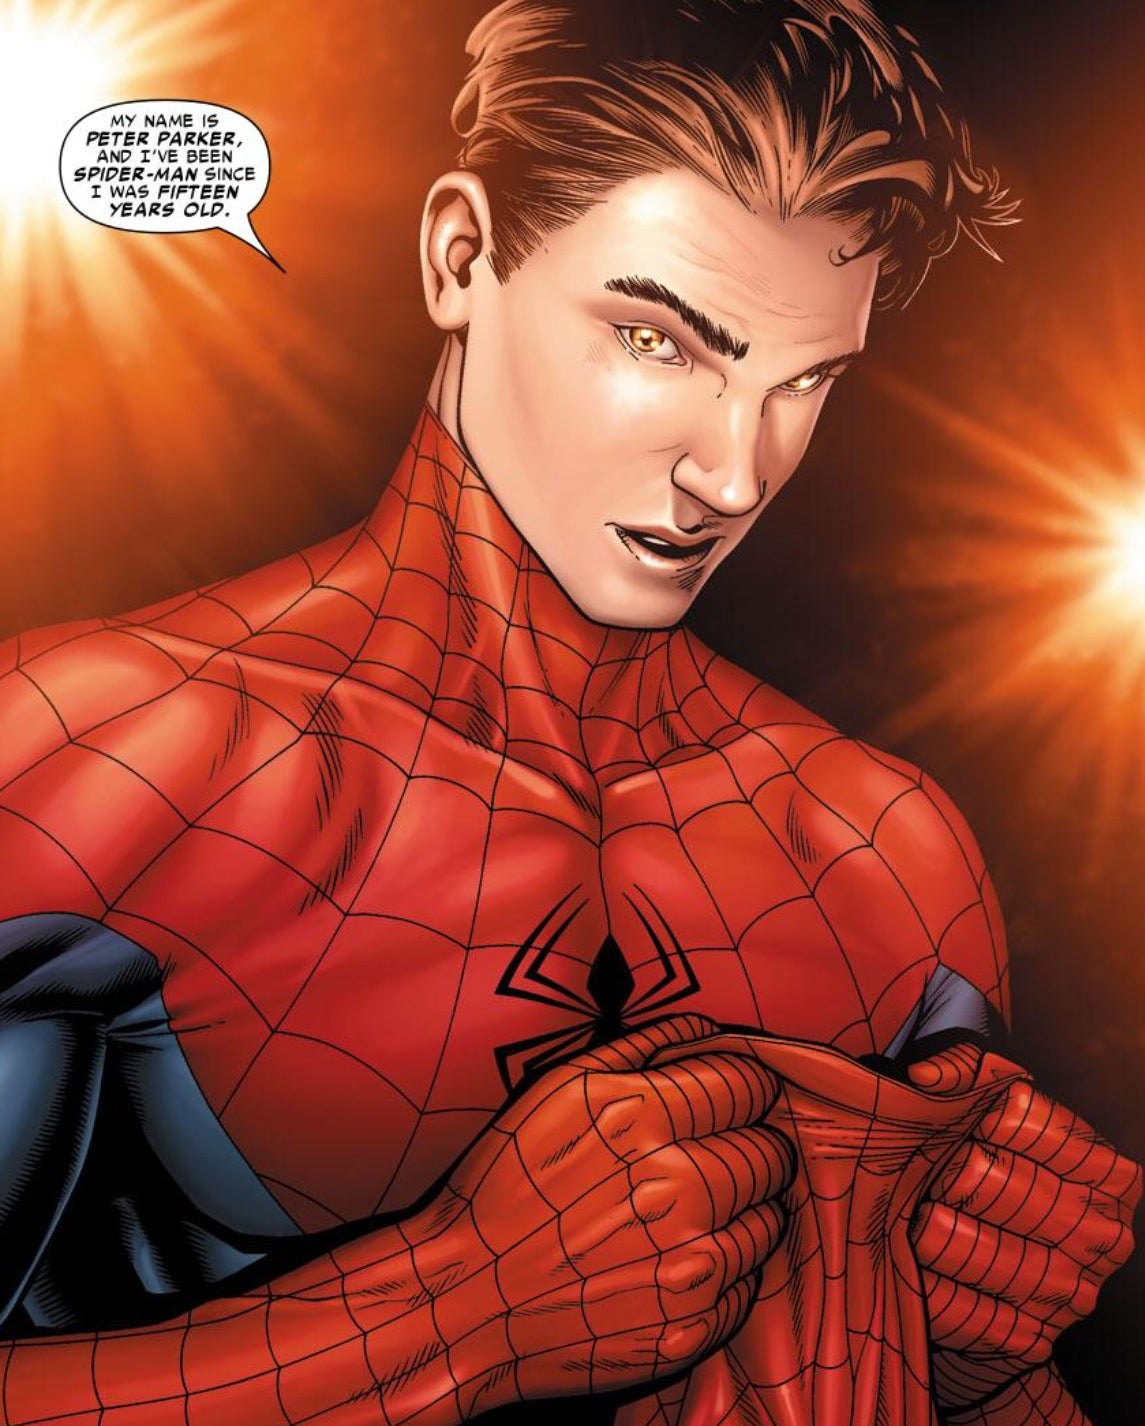 5 Storylines To Connect Spider Man With The Marvel